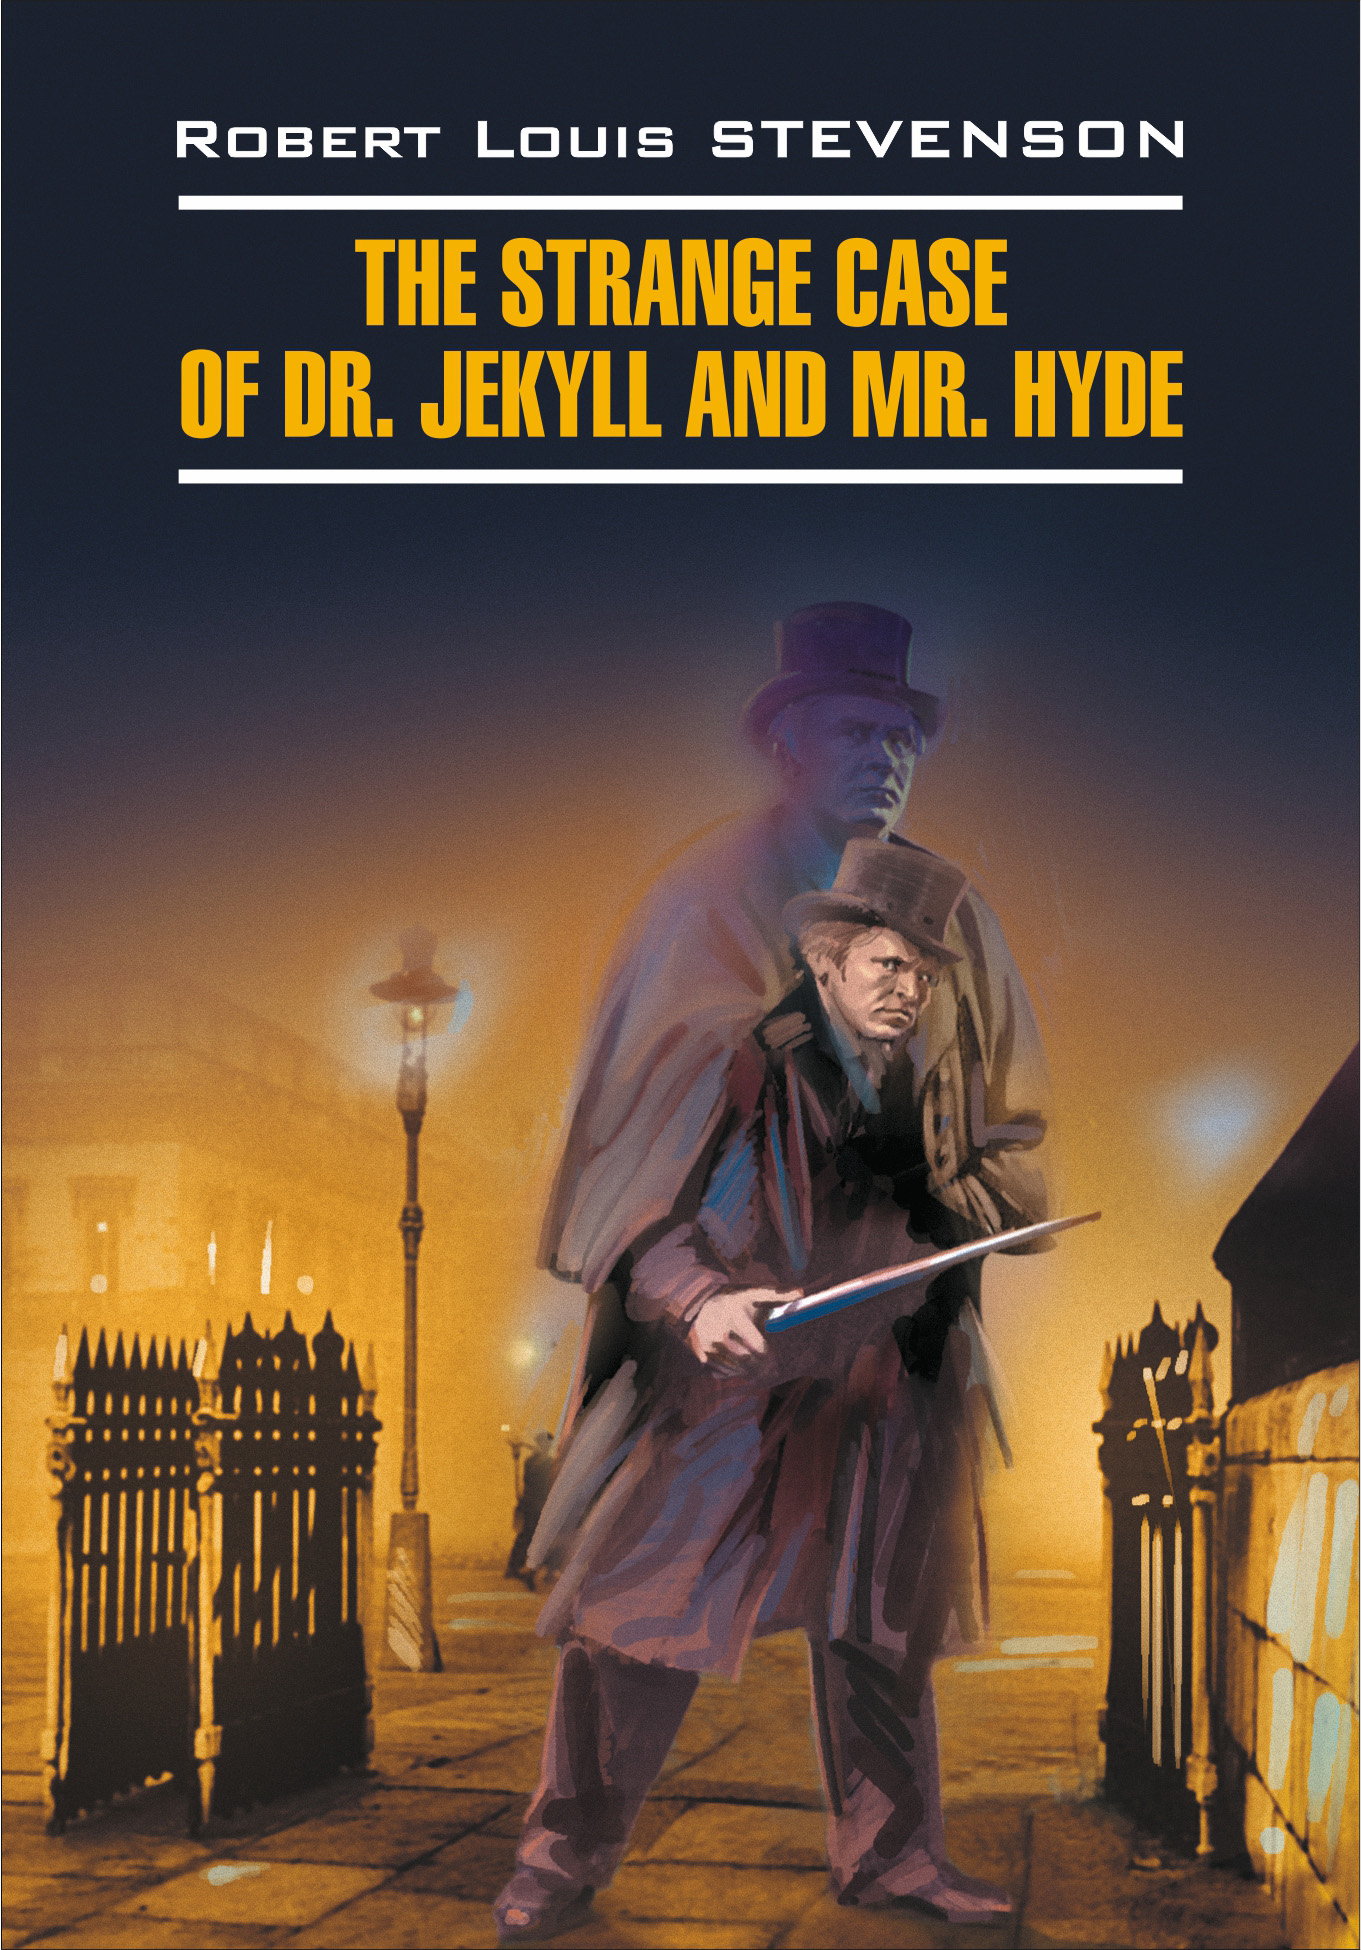 Роберт Льюис Стивенсон The Strange Case of Dr. Jekyll and Mr. Hyde / Странная история доктора Джекила и мистера Хайда. Книга для чтения на английском языке пархамович т в the strange case of dr jekyll and mr hyde книга на английском языке со словарем